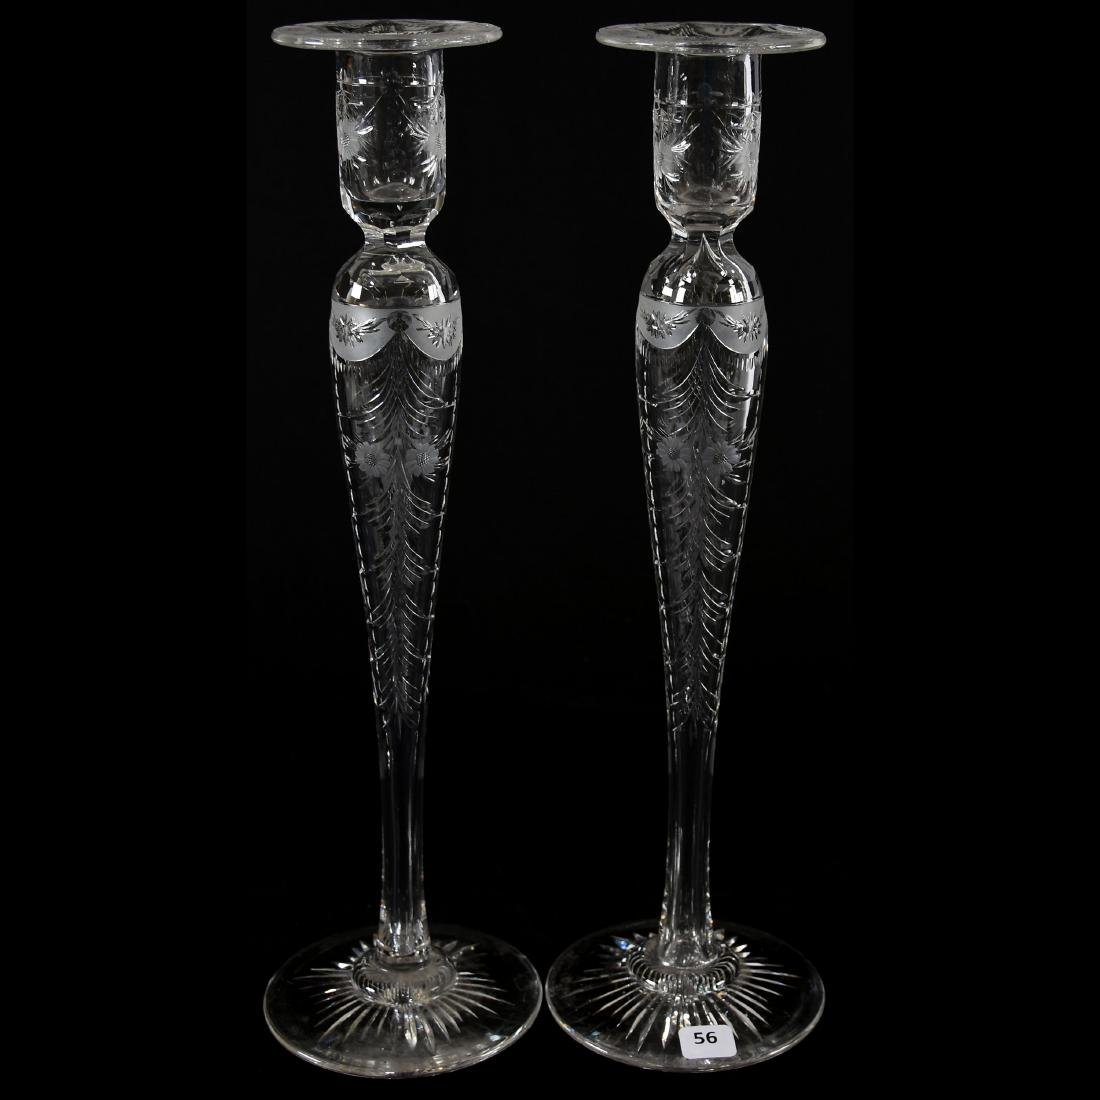 Pair Candlesticks, Engraved Floral & Garland Motif